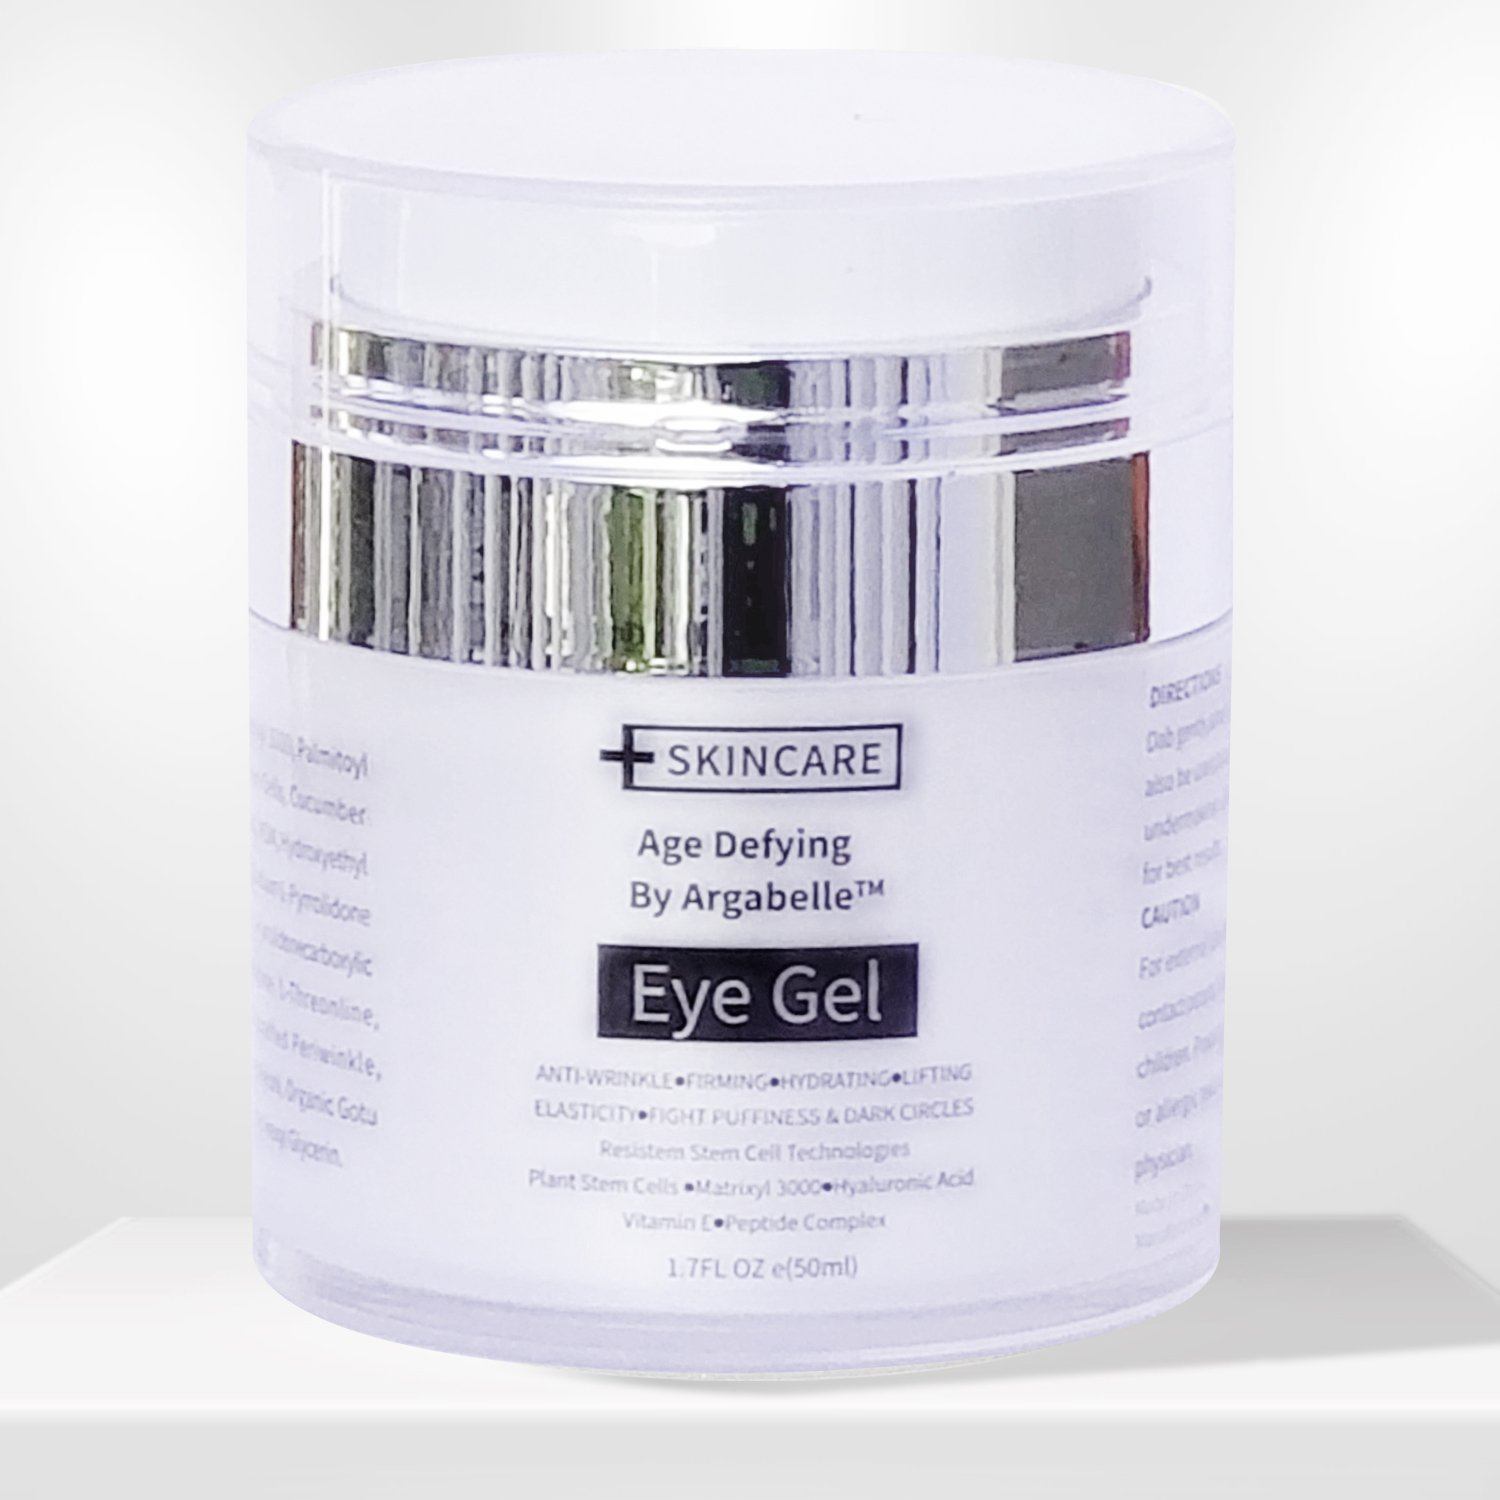 Eye Gel for Dark Circles, Puffiness, Wrinkles and Bags - The Most Effective Anti-Aging Eye Gel for Under and Around Eyes. - 1.7 fl. oz